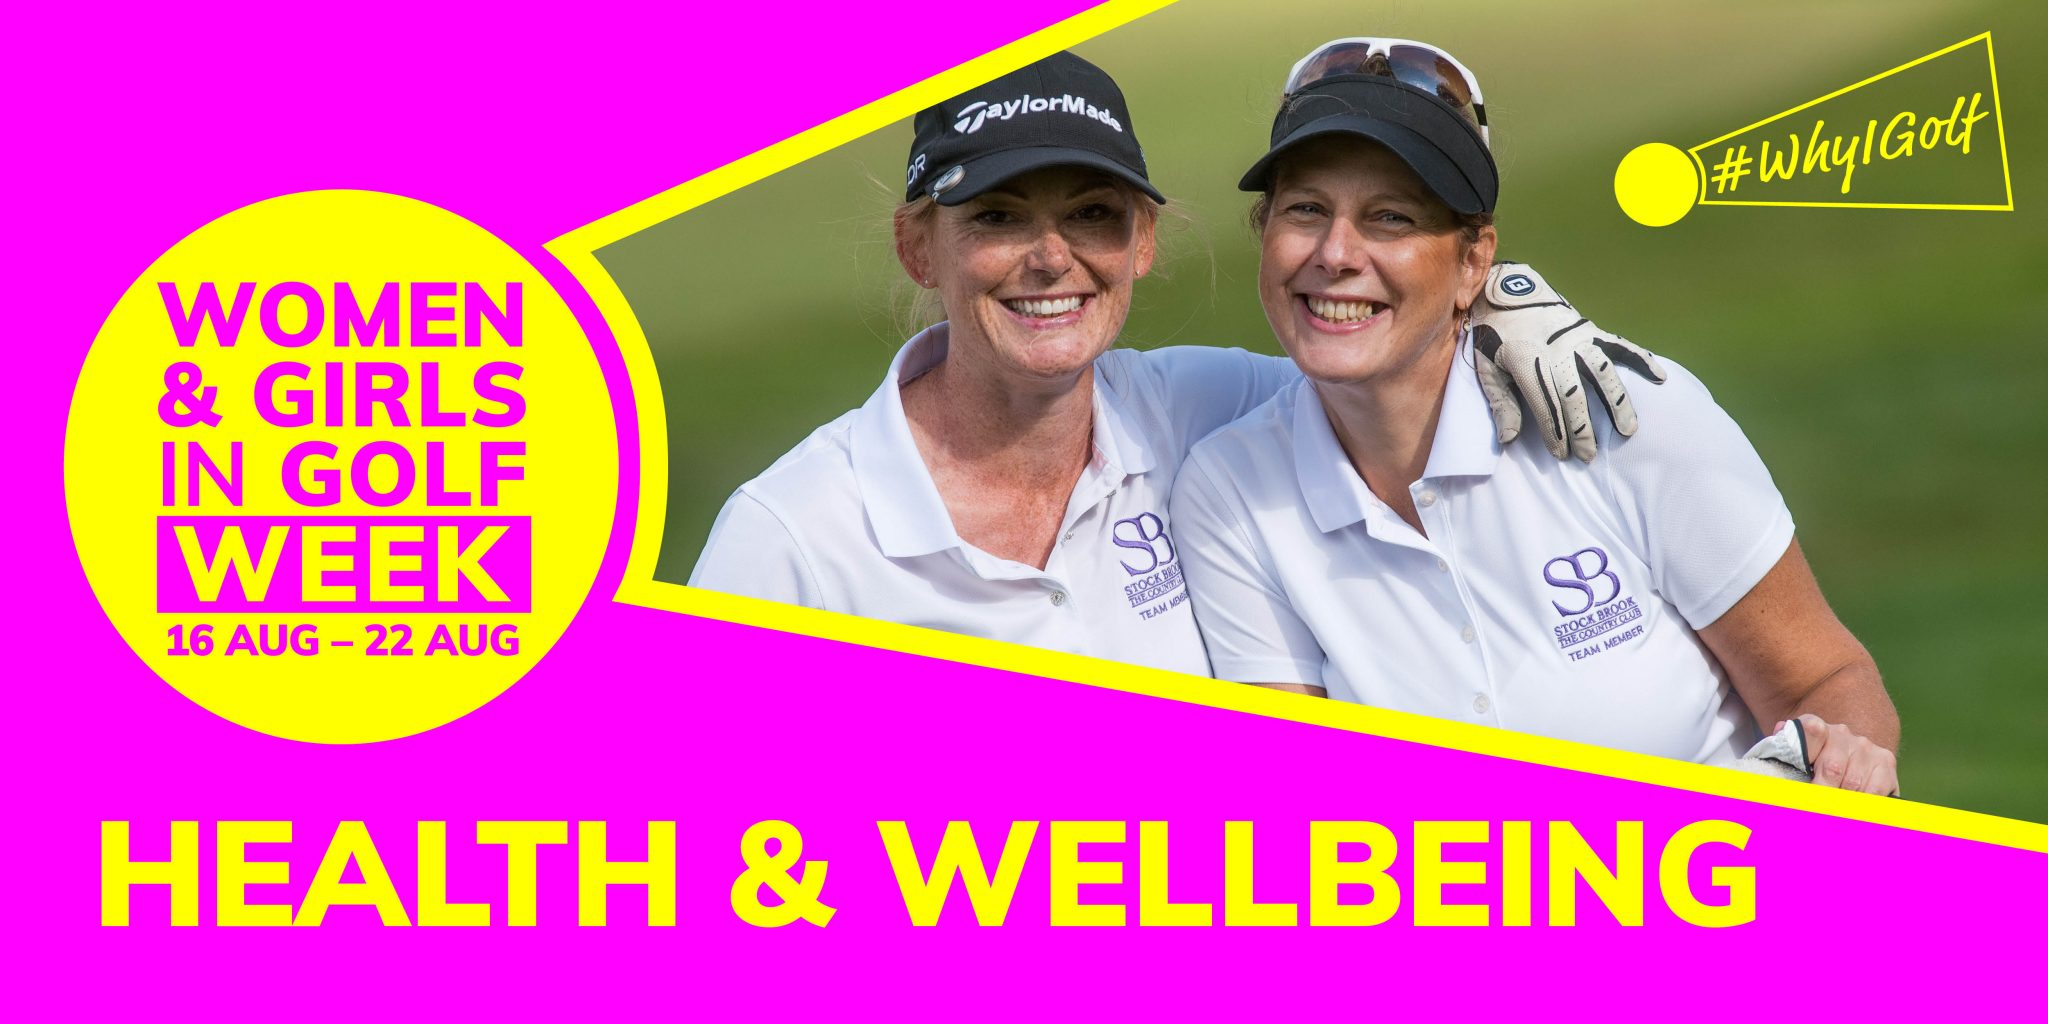 #WhyIGolf – Health and Wellbeing: Women in midlife can find fitness on fairways